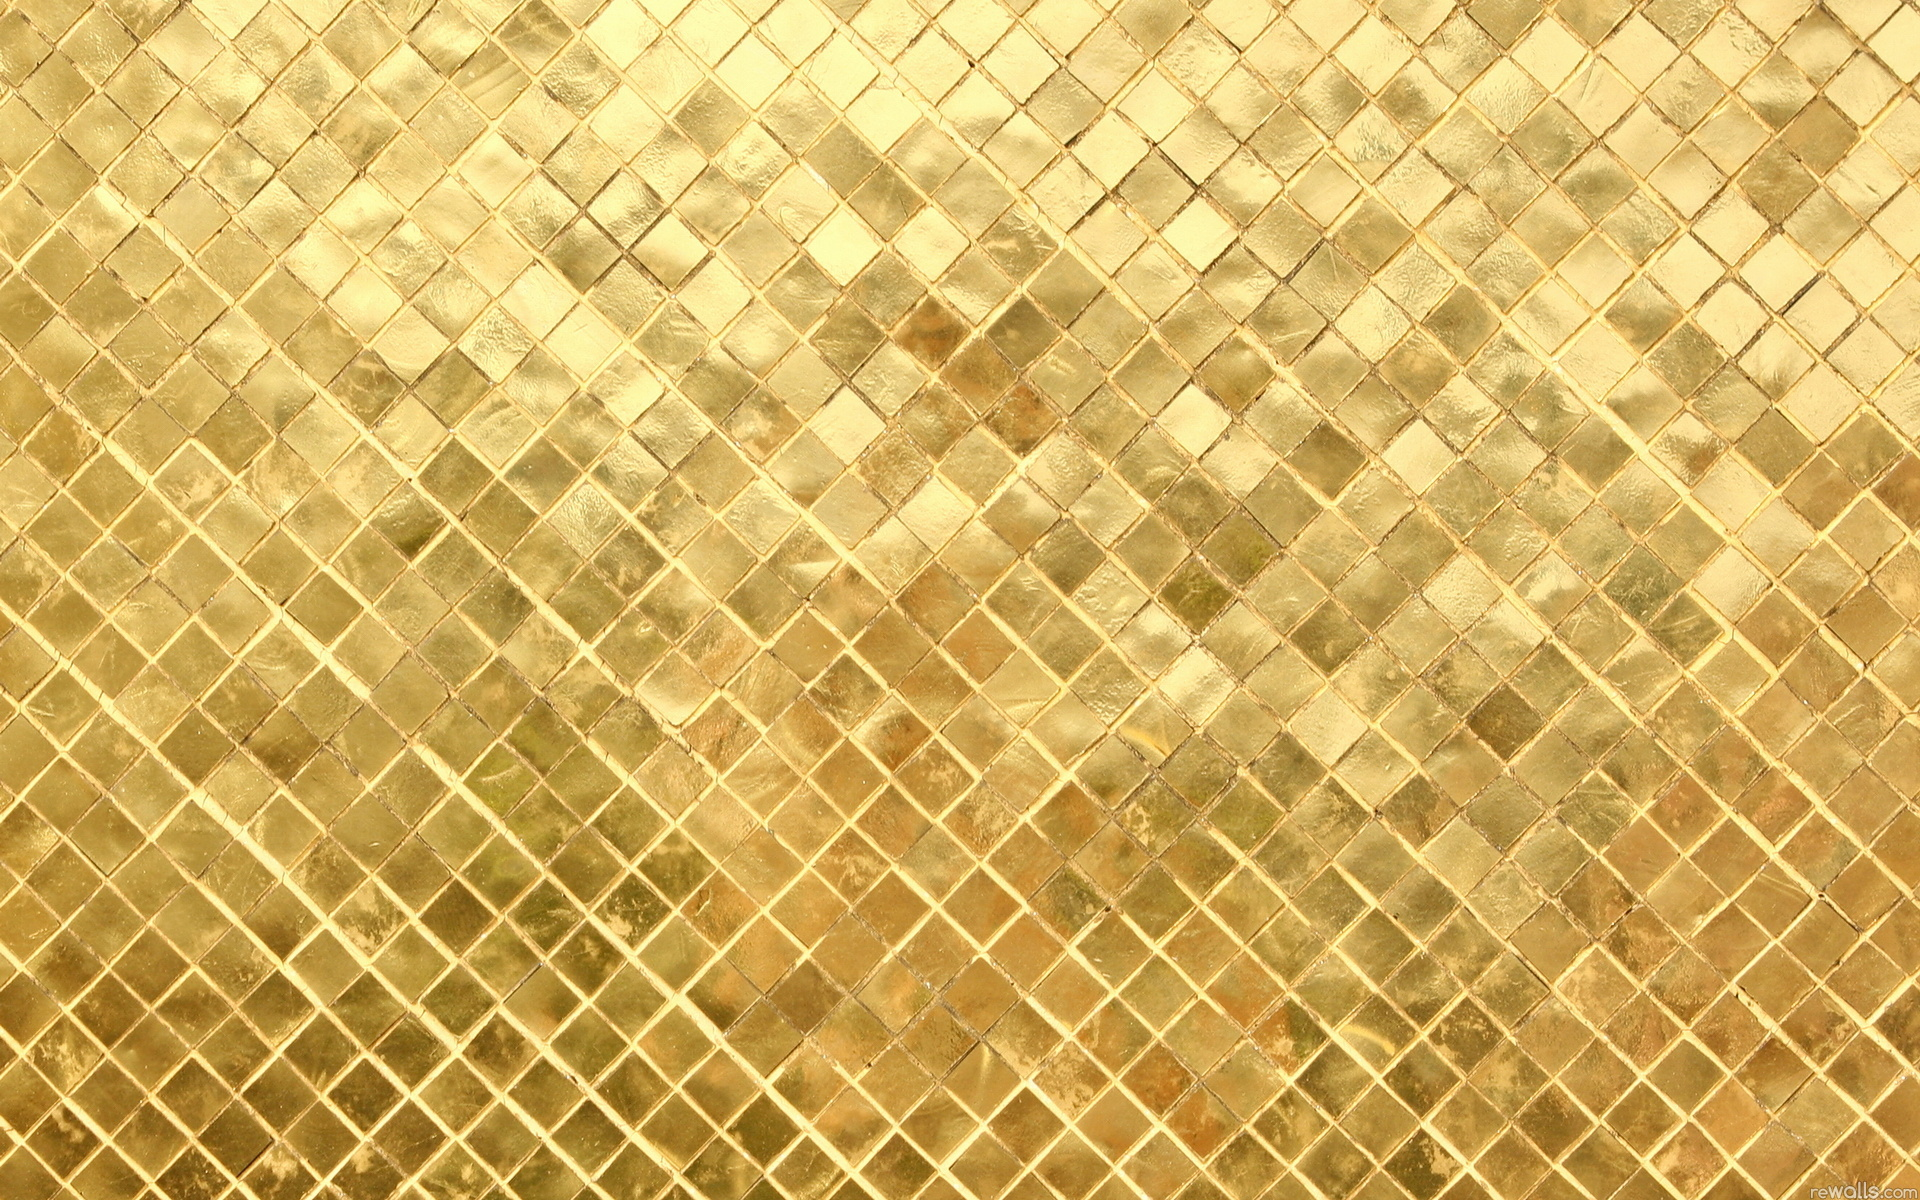 40 HD Gold Wallpaper Backgrounds For Desktop Download 1920x1200